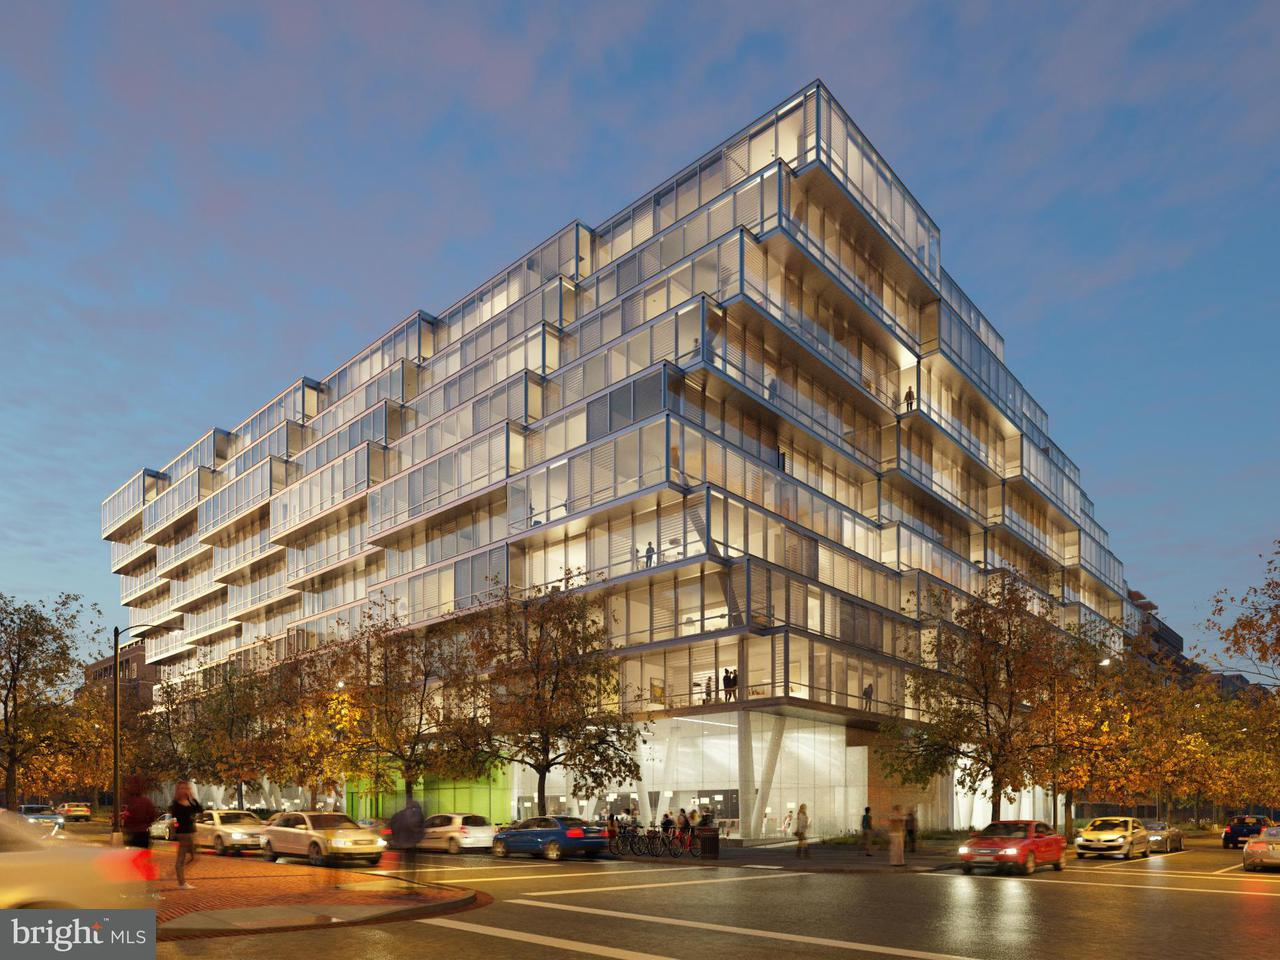 Condominium for Sale at 1111 24th St Nw #72 1111 24th St Nw #72 Washington, District Of Columbia 20037 United States